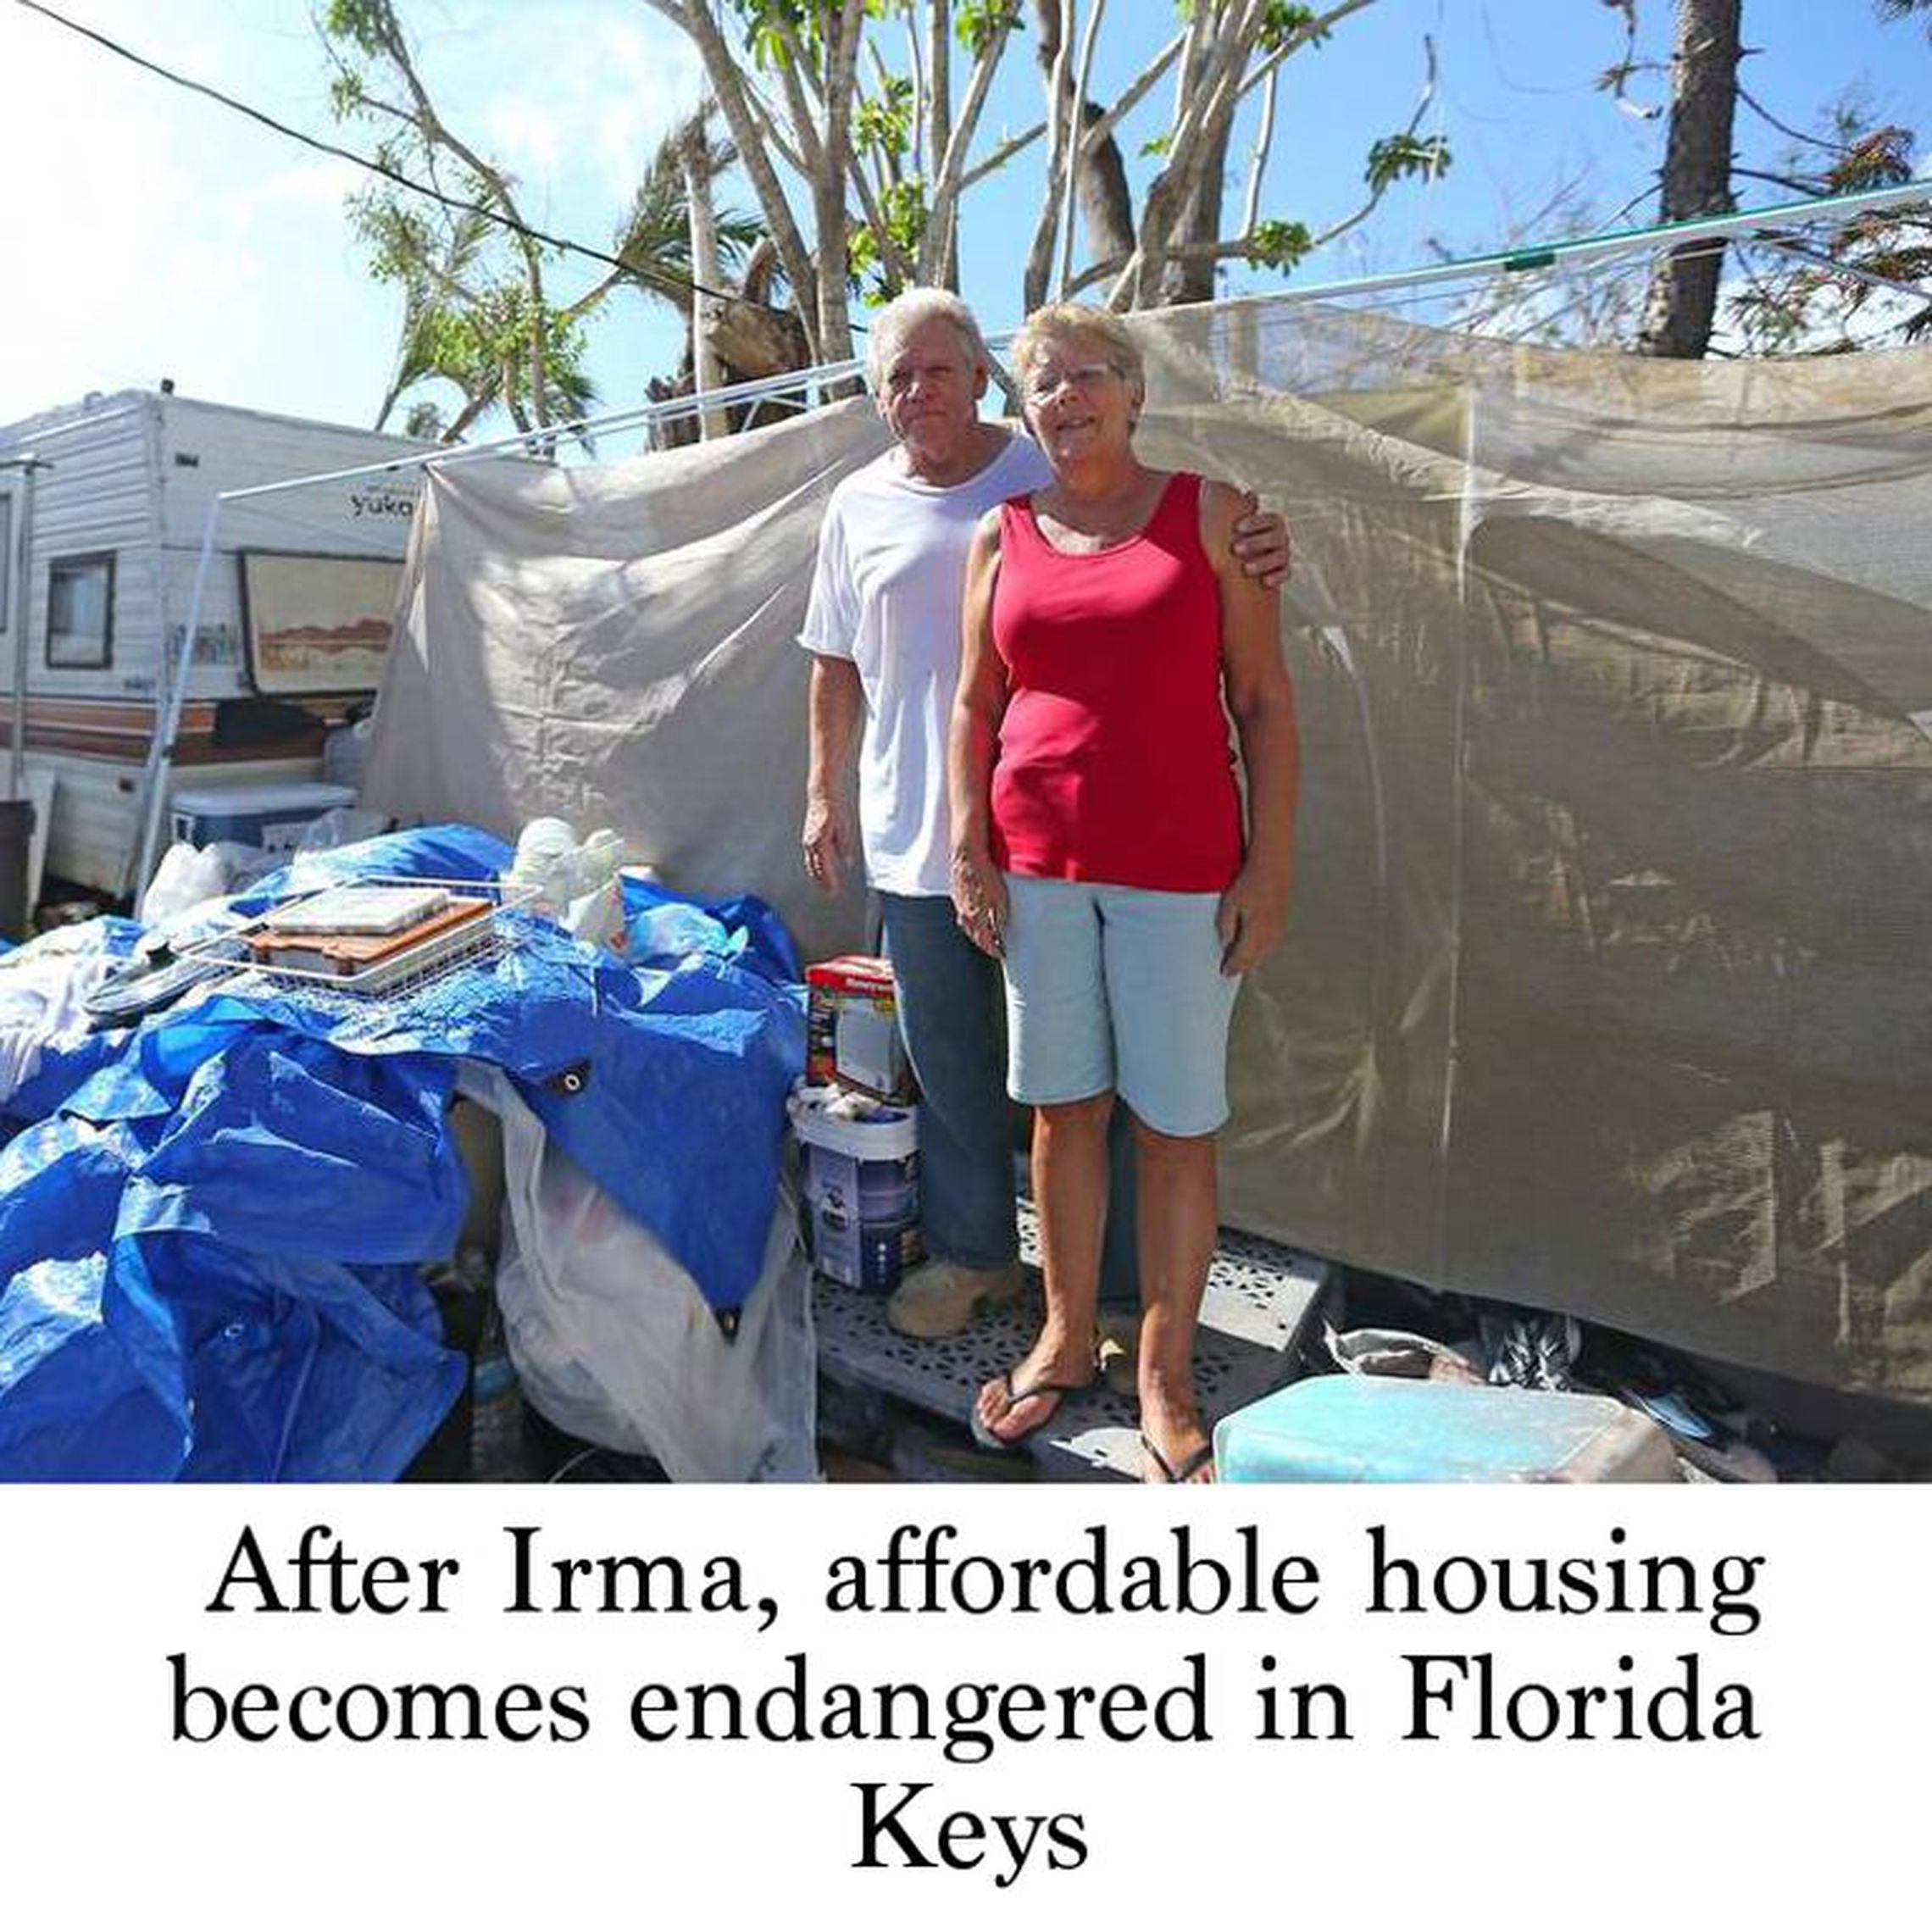 After Irma, affordable housing becomes endangered in Florida